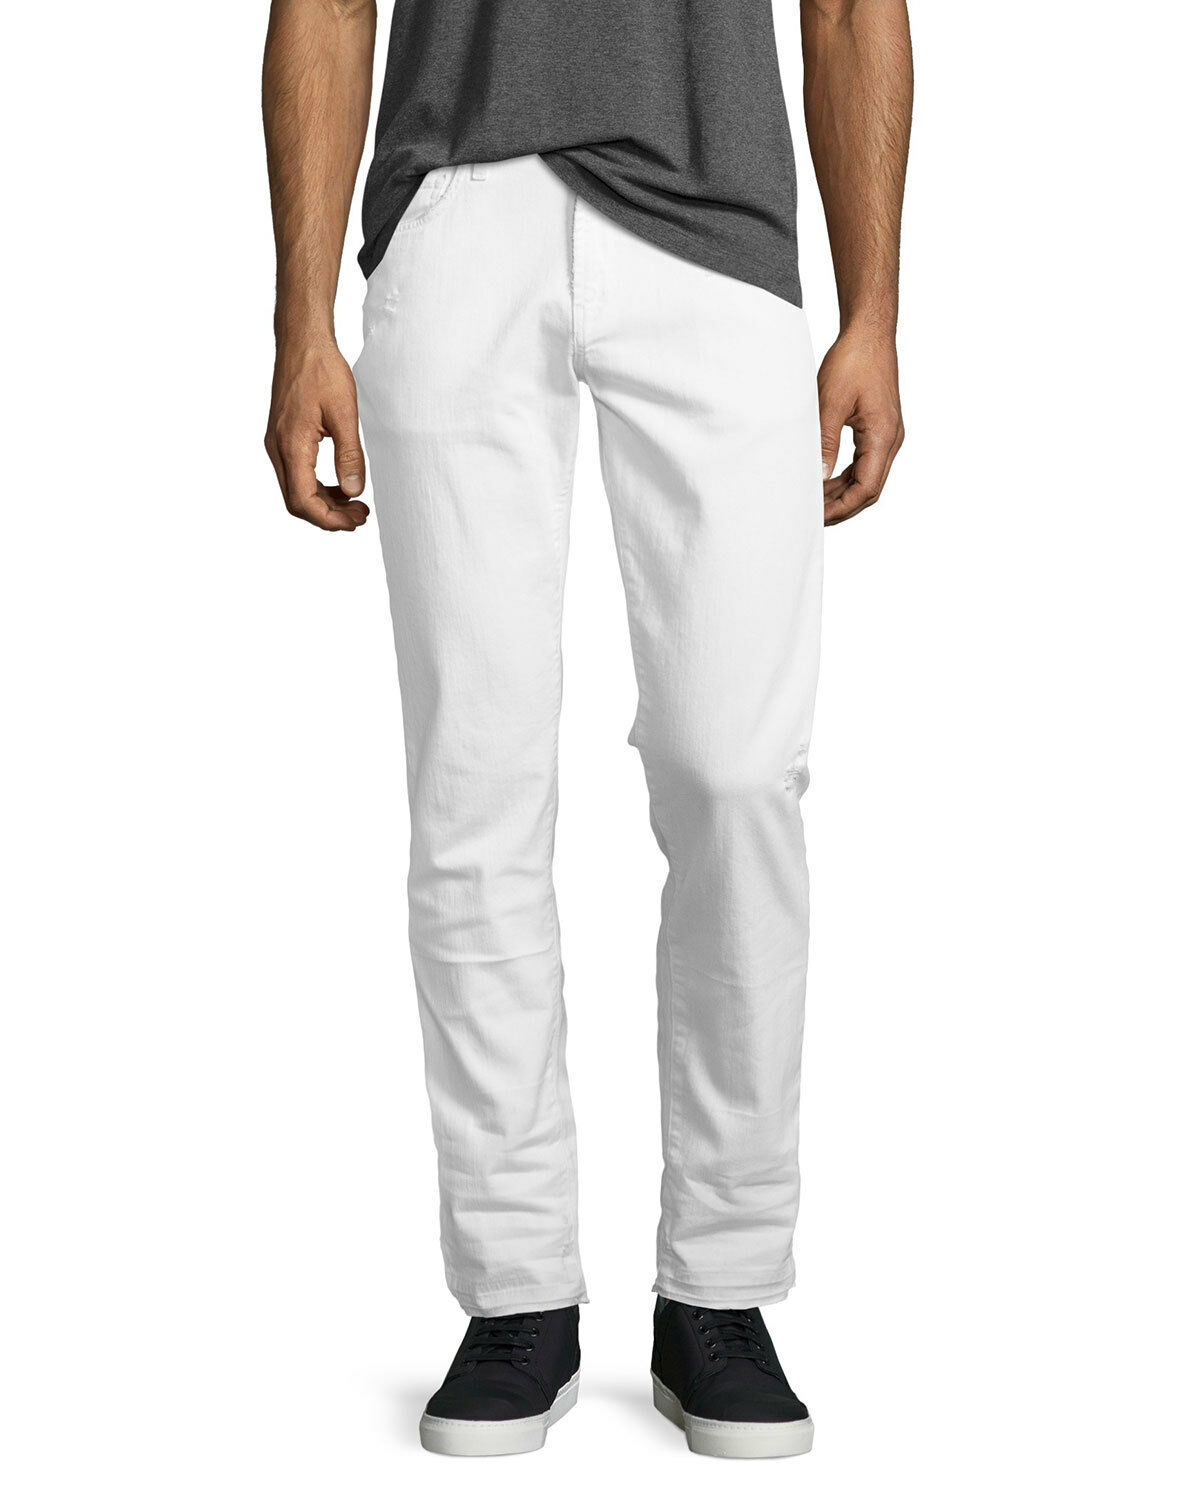 J BRAND MENS TYLER TAPER SLIM FIT JEANS IN ALKALINE SIZE 33